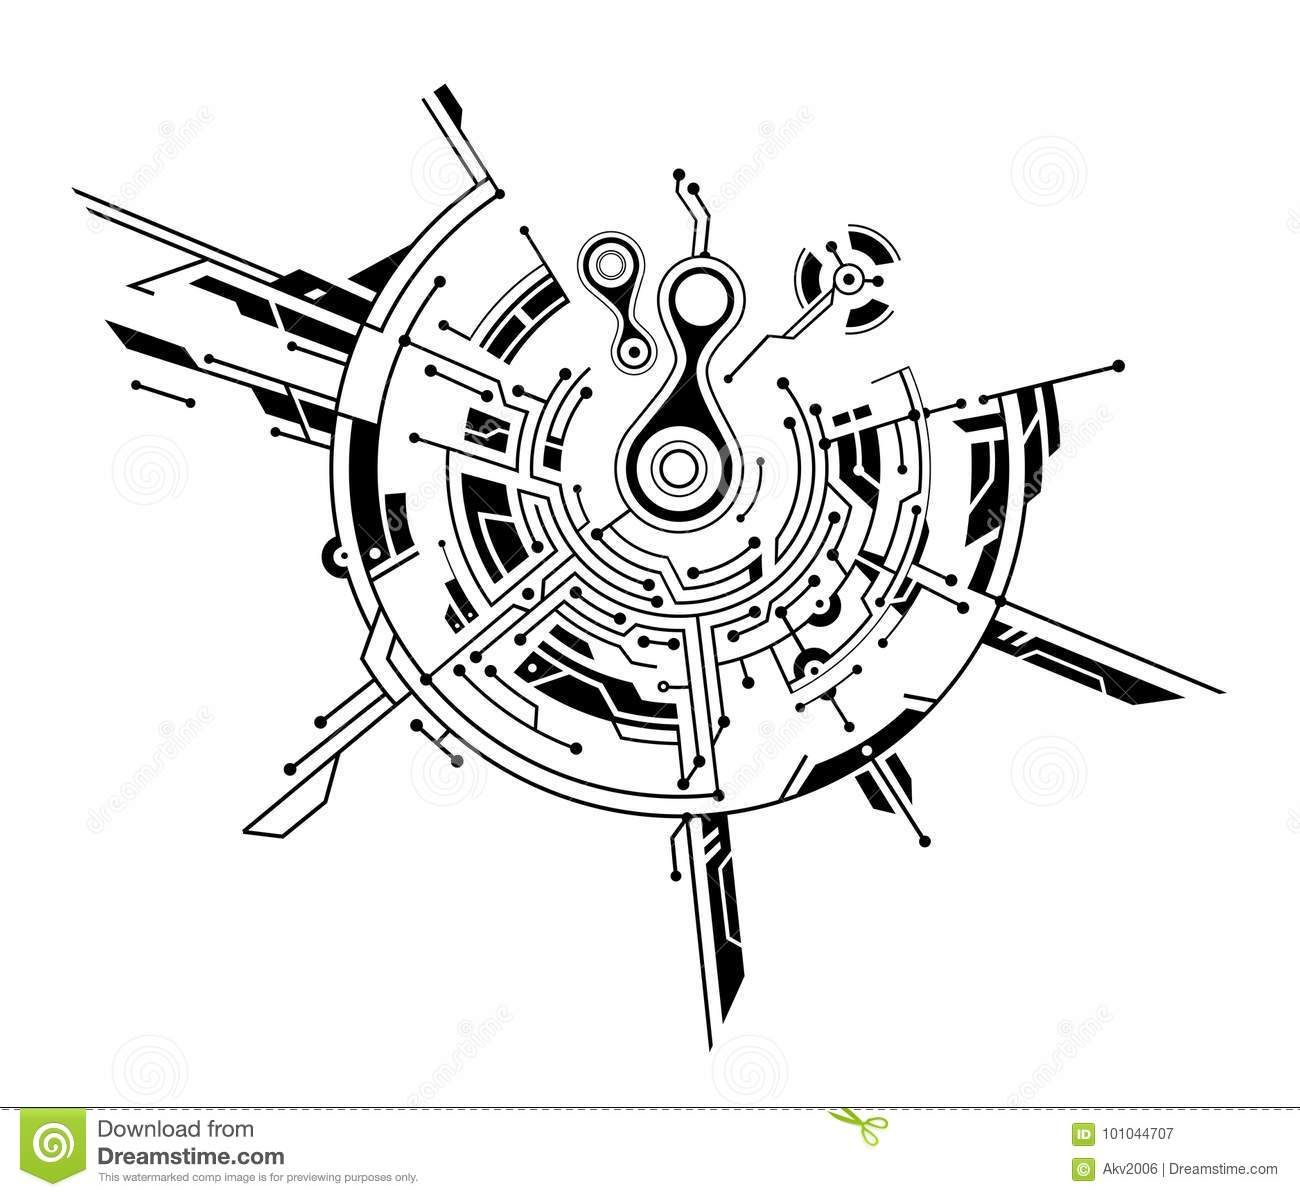 Photo About Circuit Board Graphic Concept Isolated On White Illustration Of Technology Board Digital 1010 Geometric Tattoo Cyberpunk Tattoo Circuit Tattoo